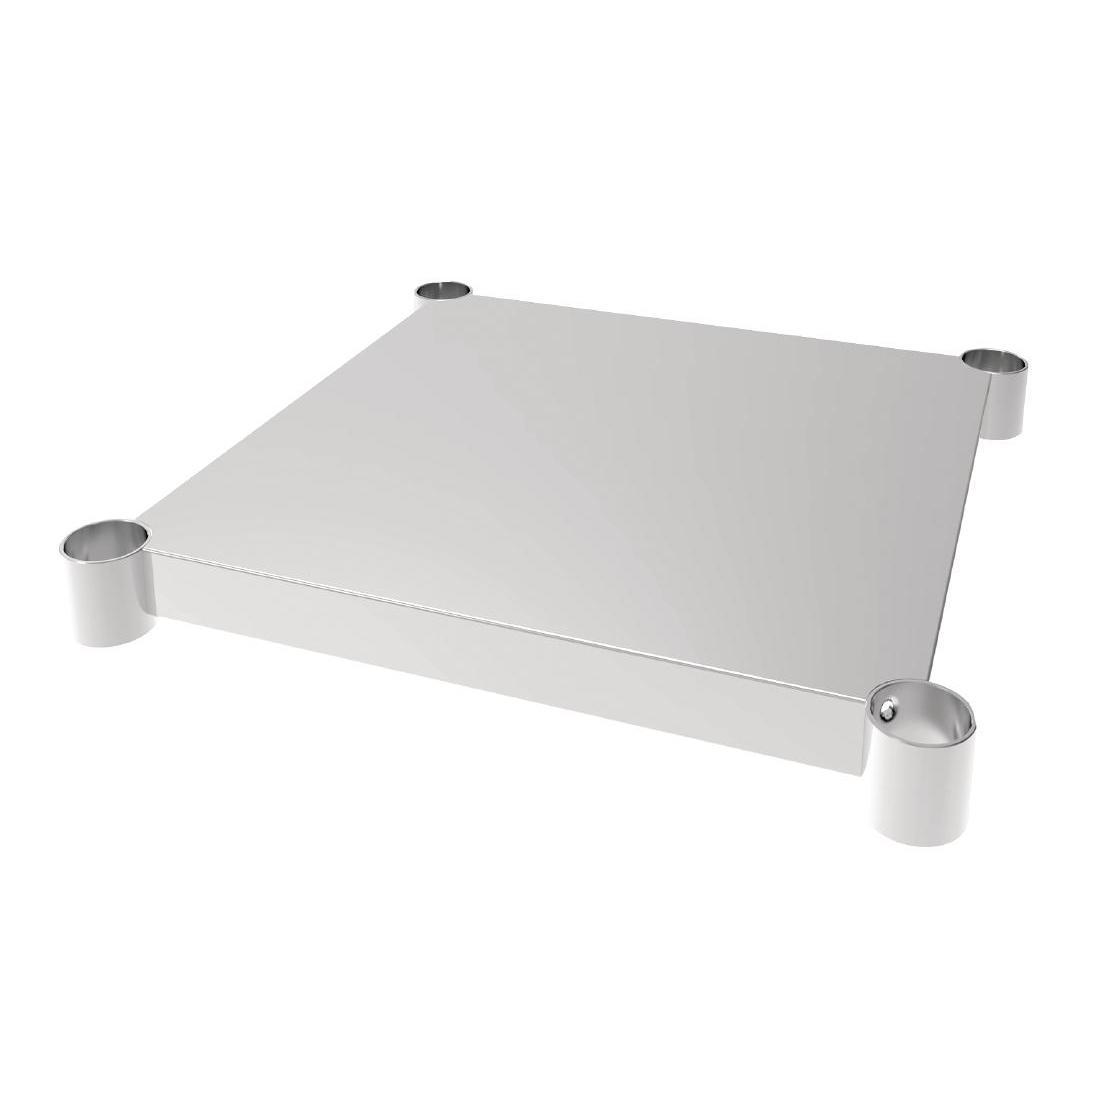 Vogue Stainless Steel Table Shelf 600x600mm - Each - CP830